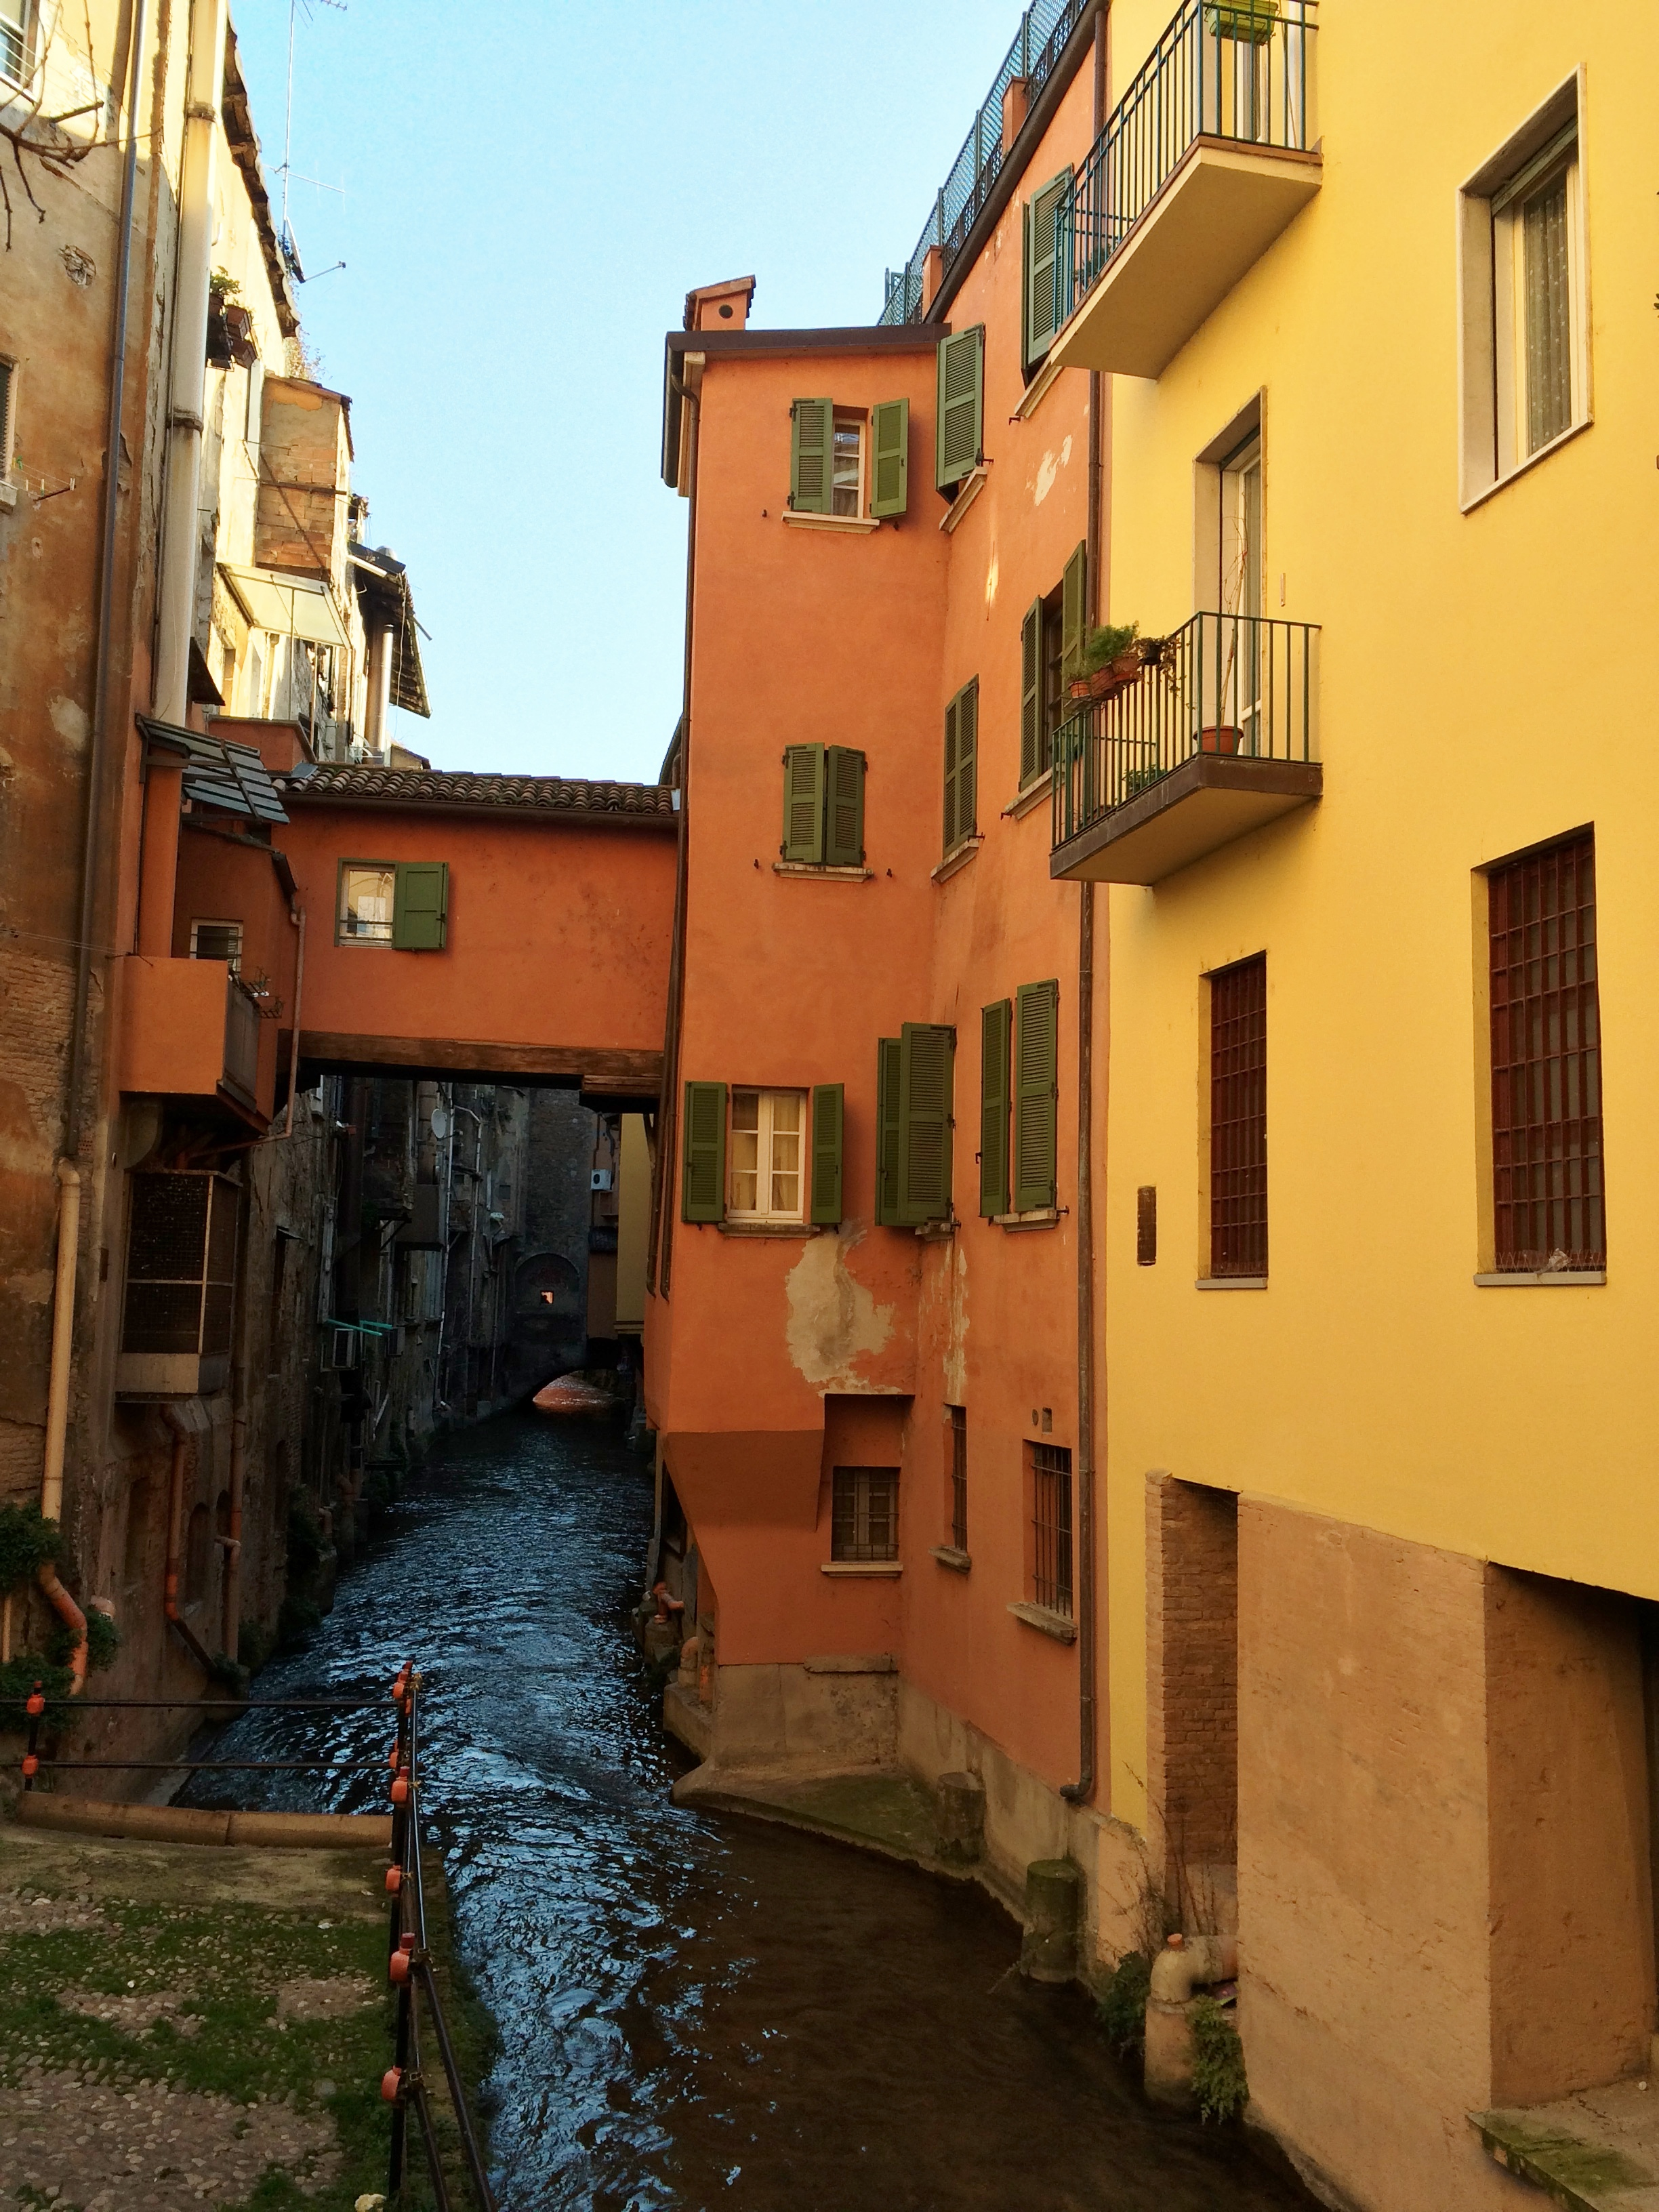 Houses by the canale delle Moline, via Malcontenti